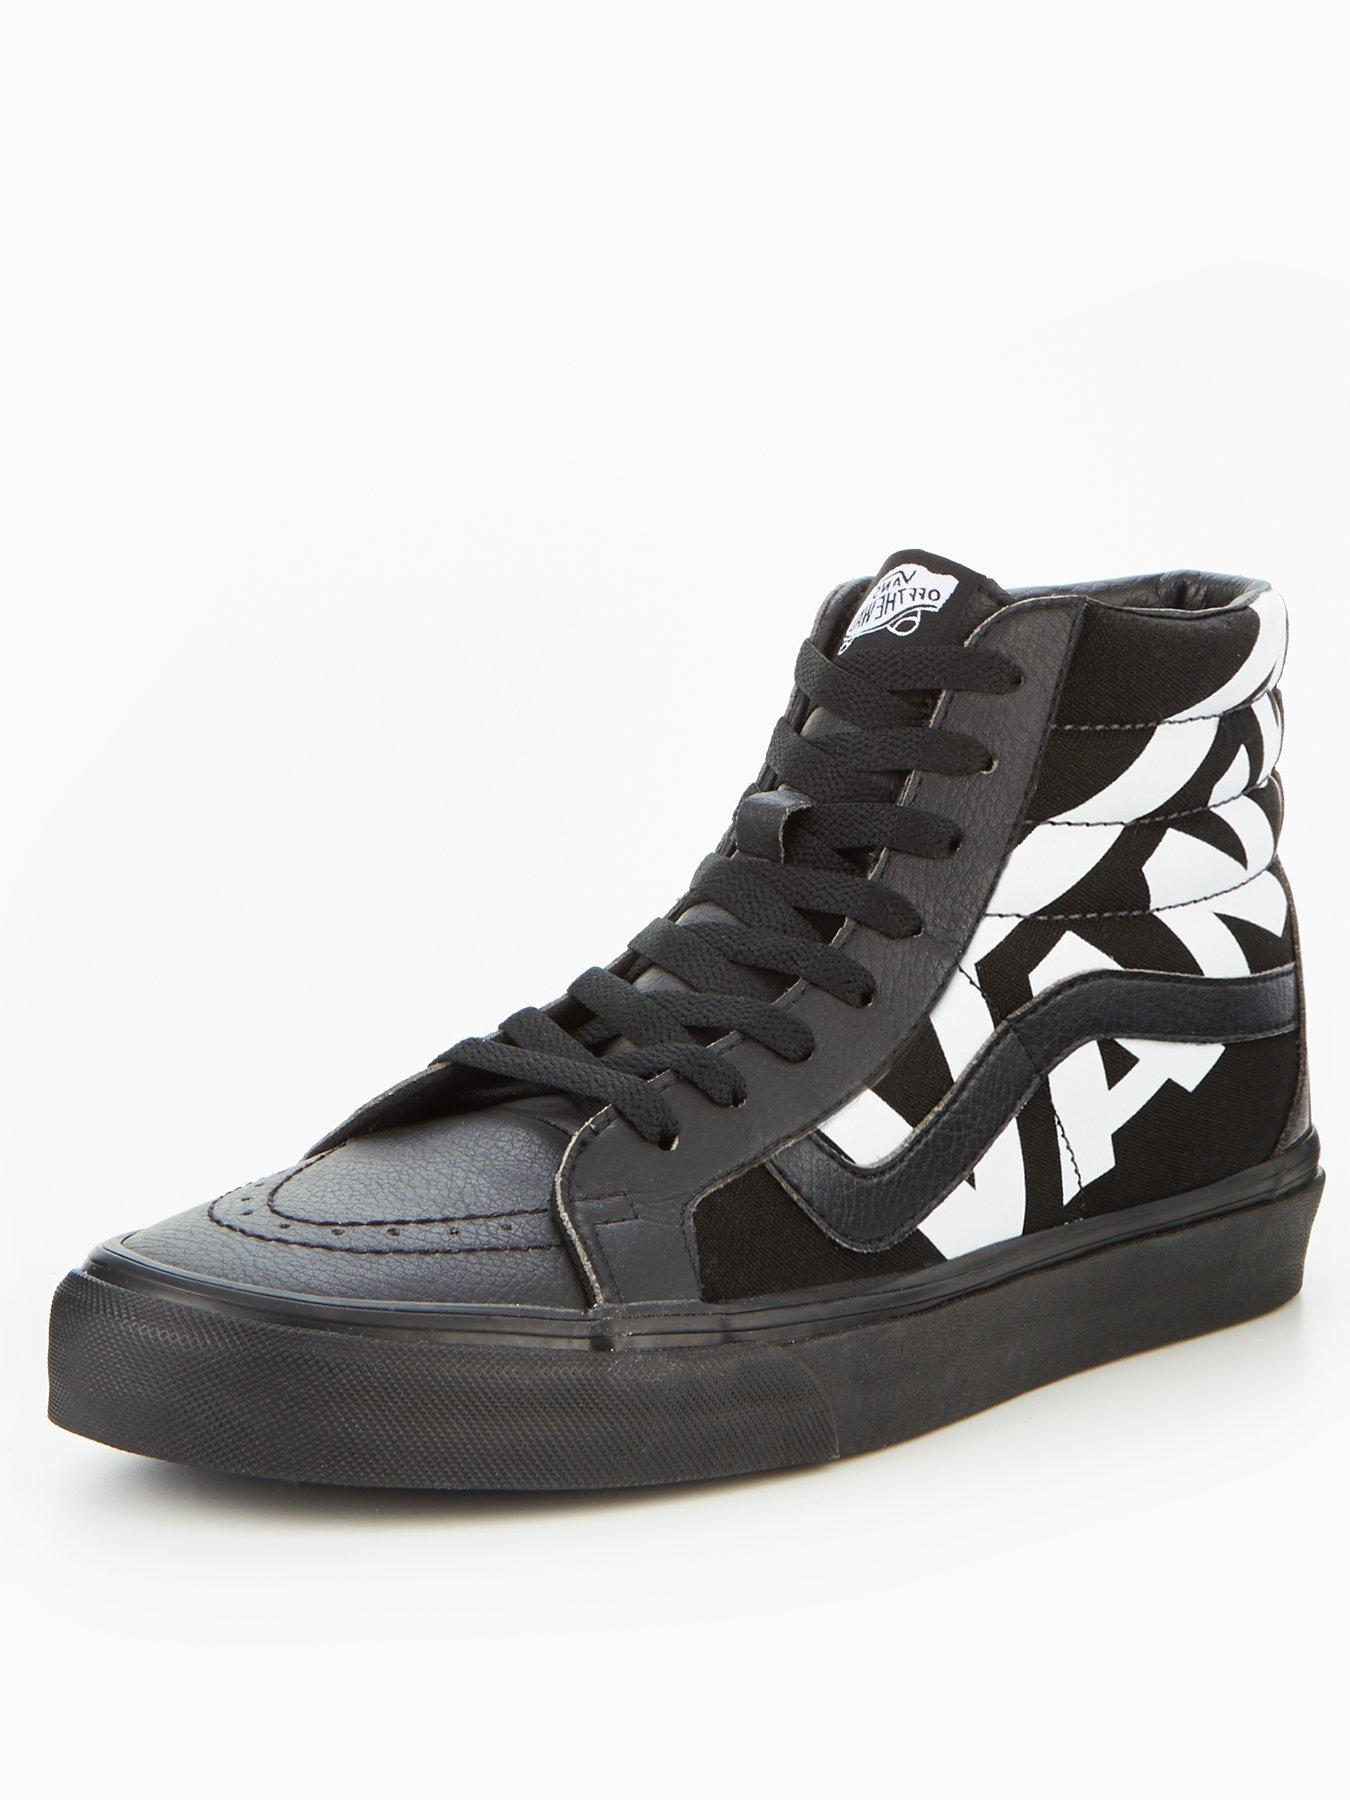 0b1b7eec26 Buy high top vans with flowers